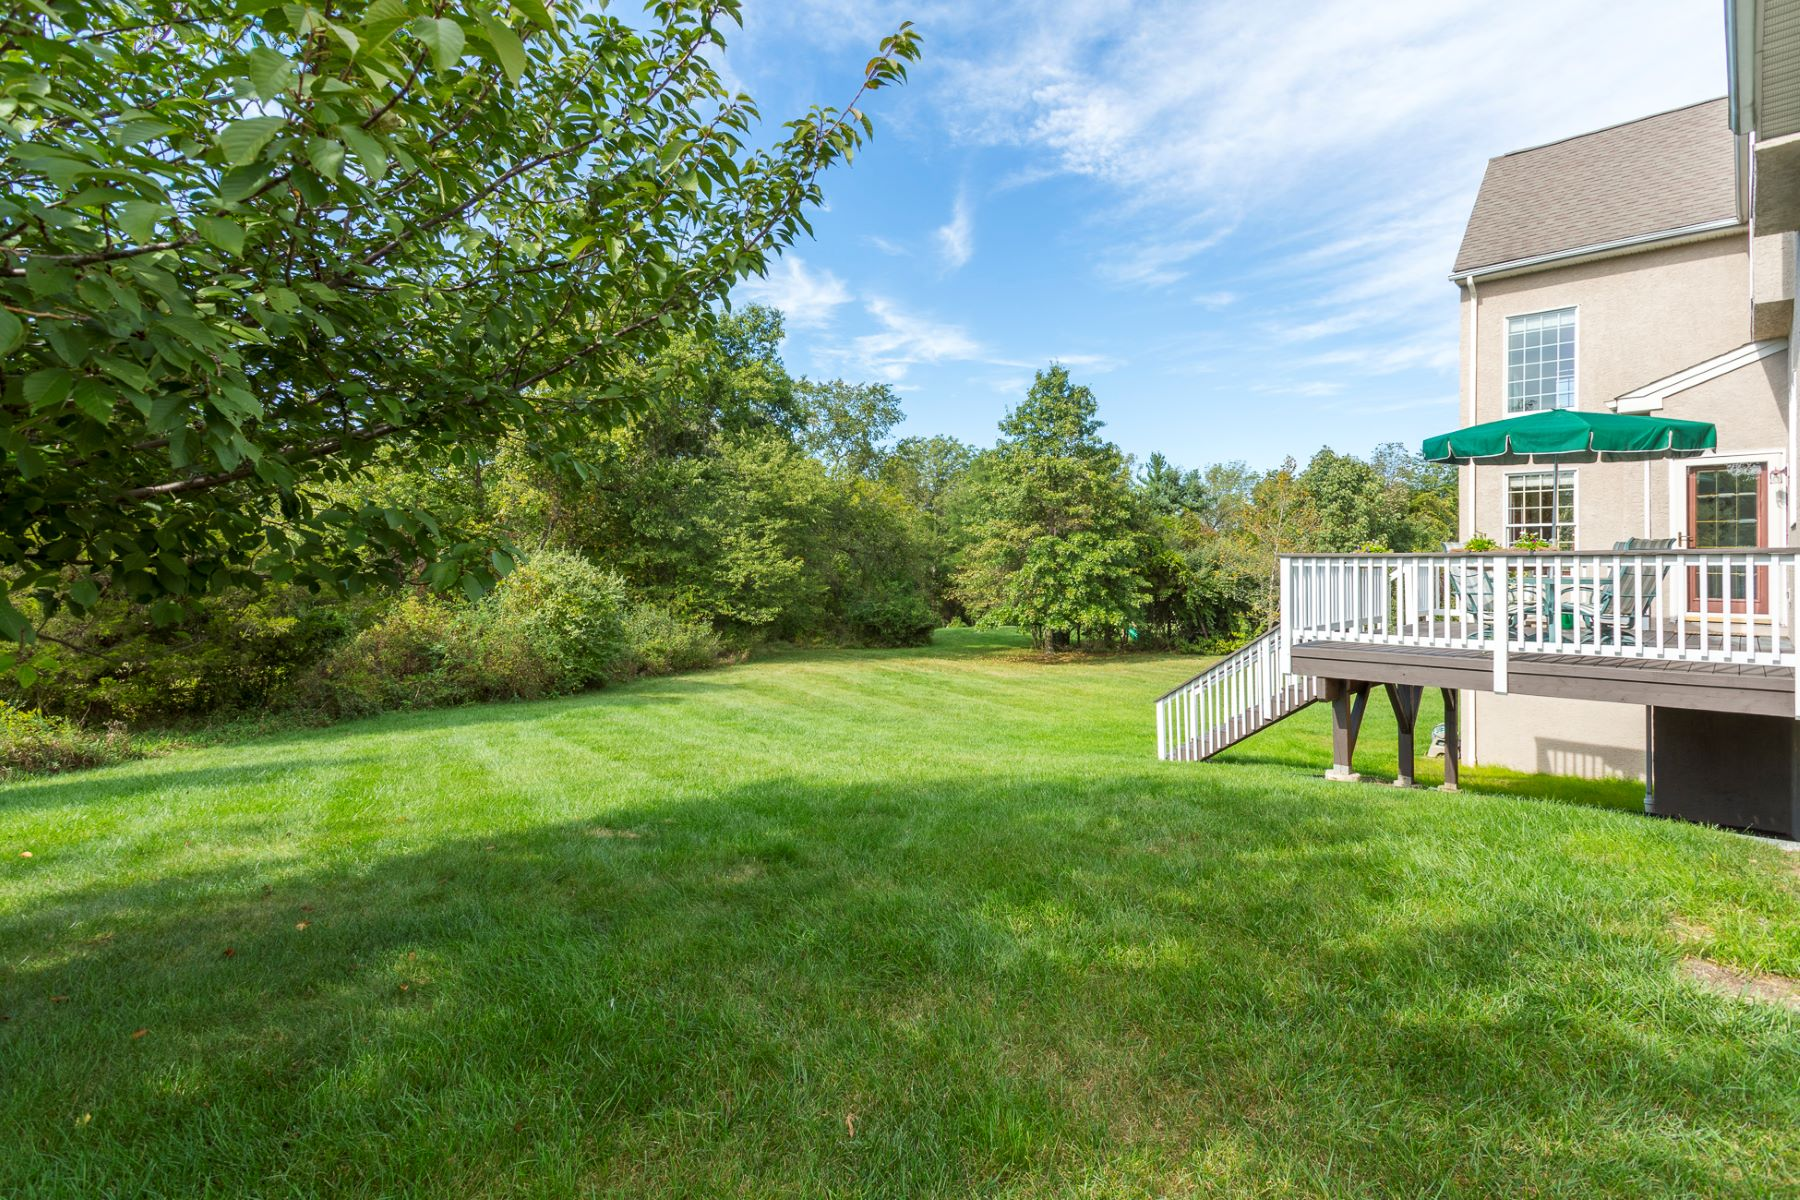 Additional photo for property listing at A Rare Find - Montgomery Township 103 Van Zandt Road 斯基尔曼, 新泽西州 08558 美国